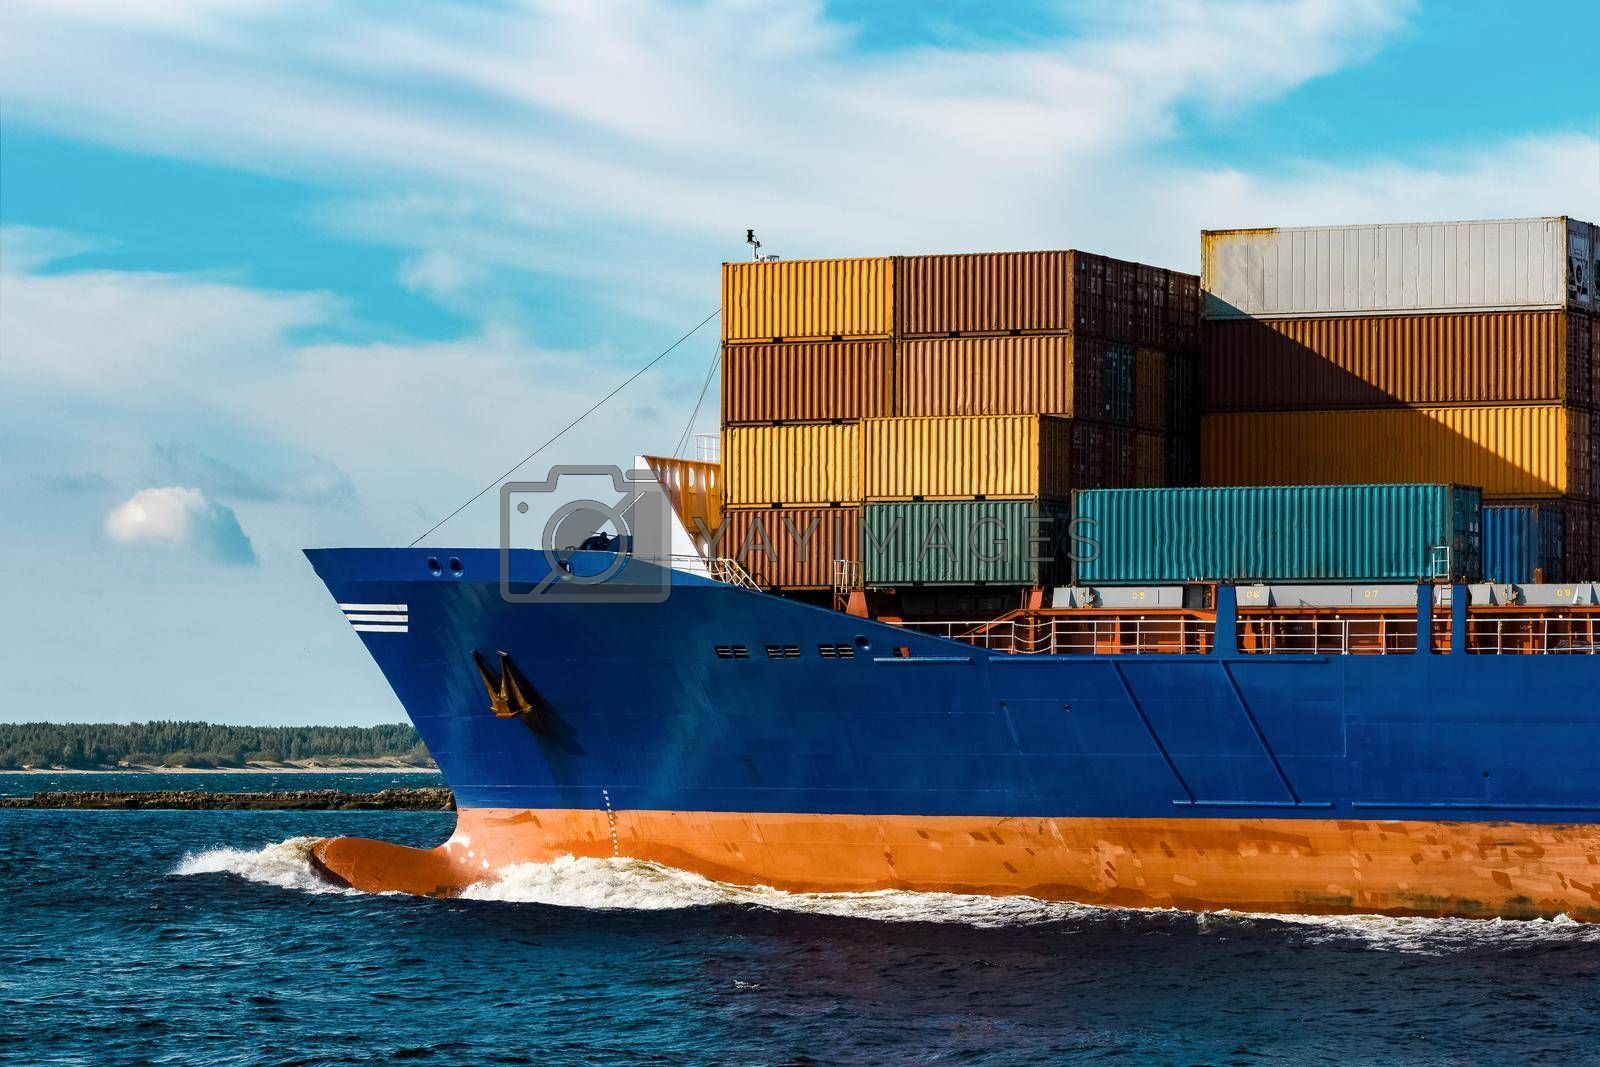 Blue container ship in travel. Logistics and freight industry